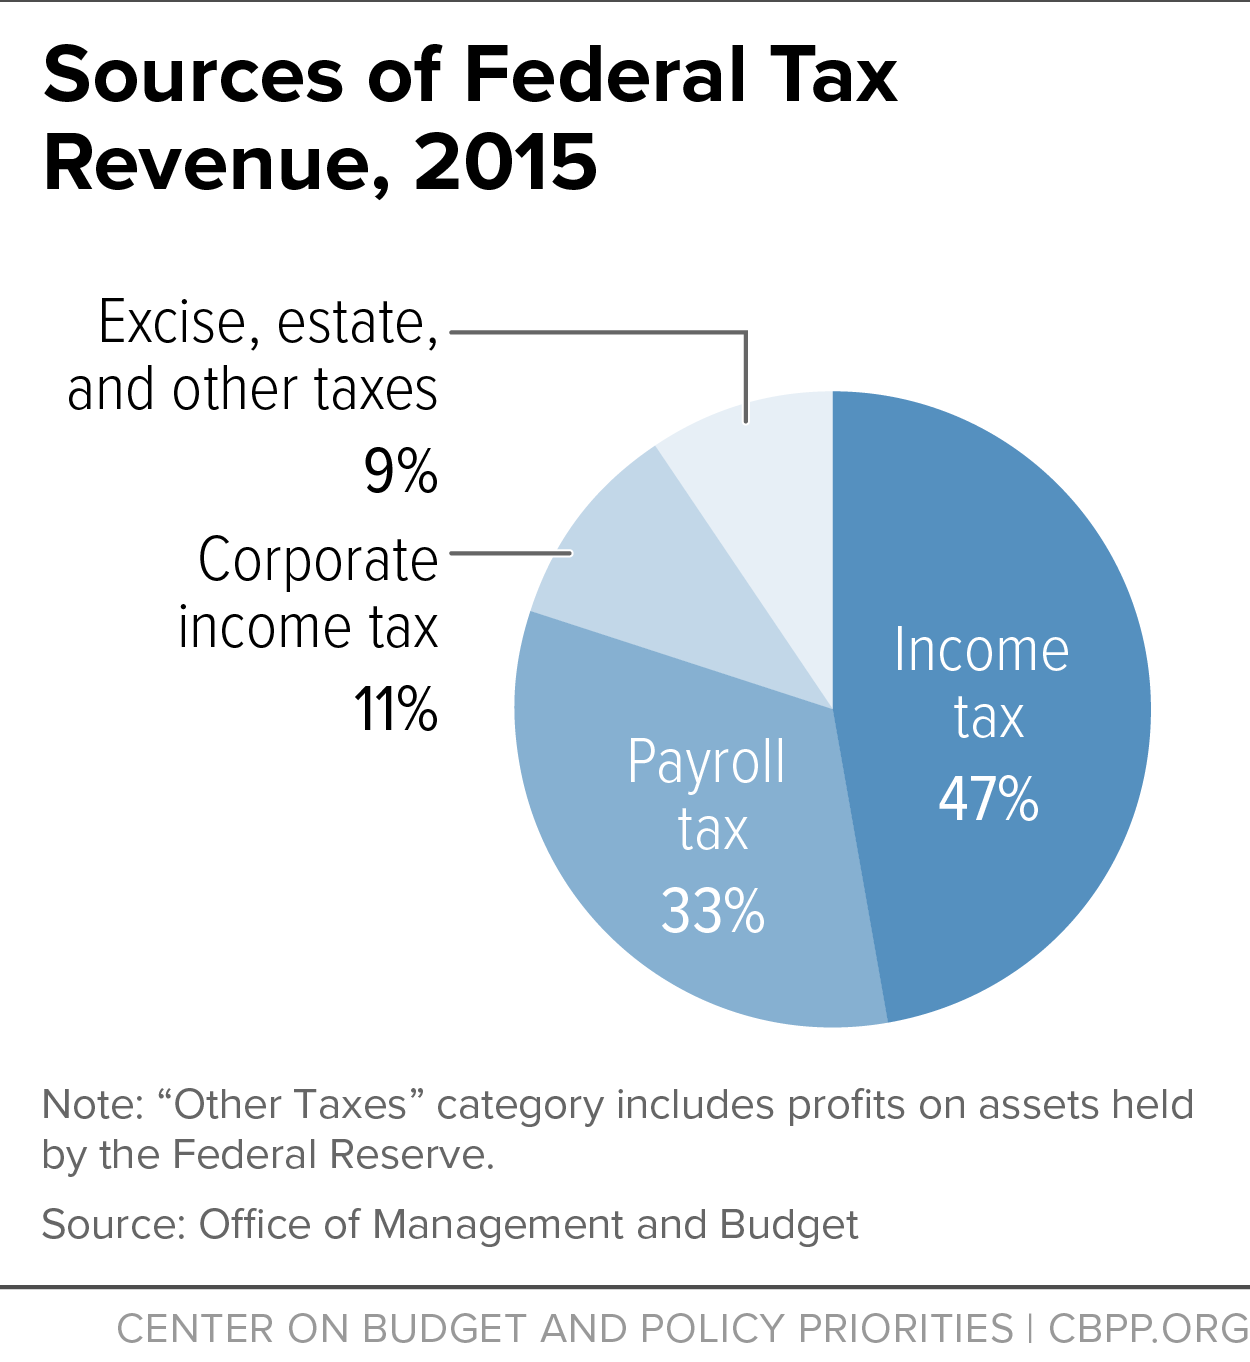 Sources of Federal Tax Revenue, 2015